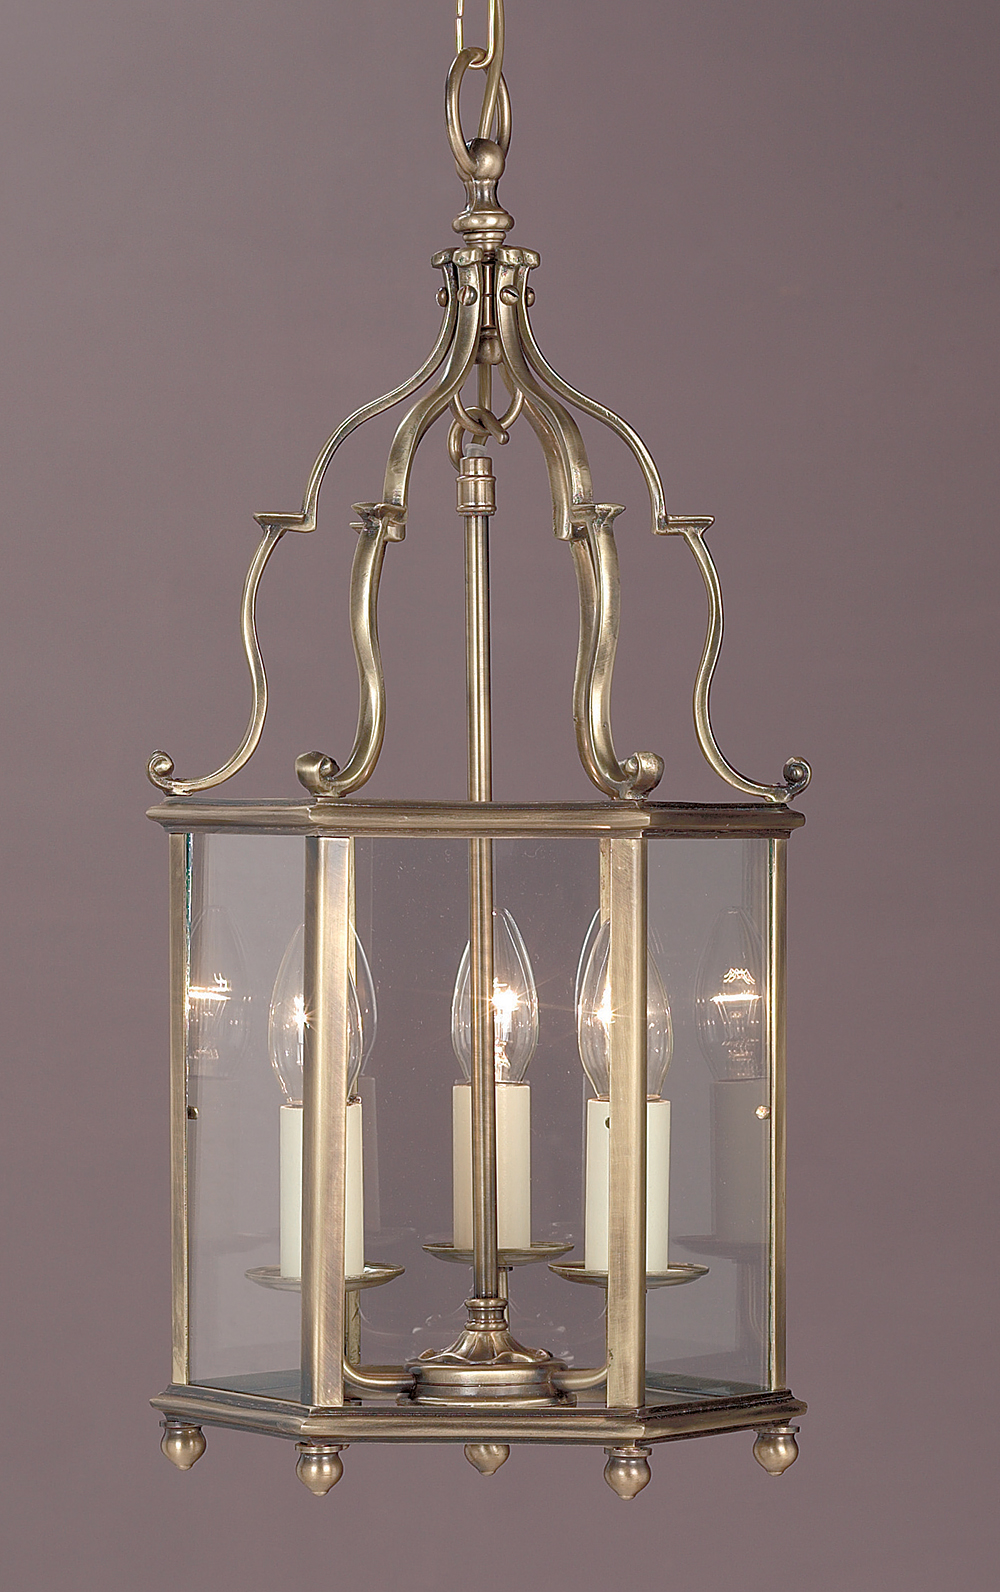 Belgravia 3lt Antique Brass